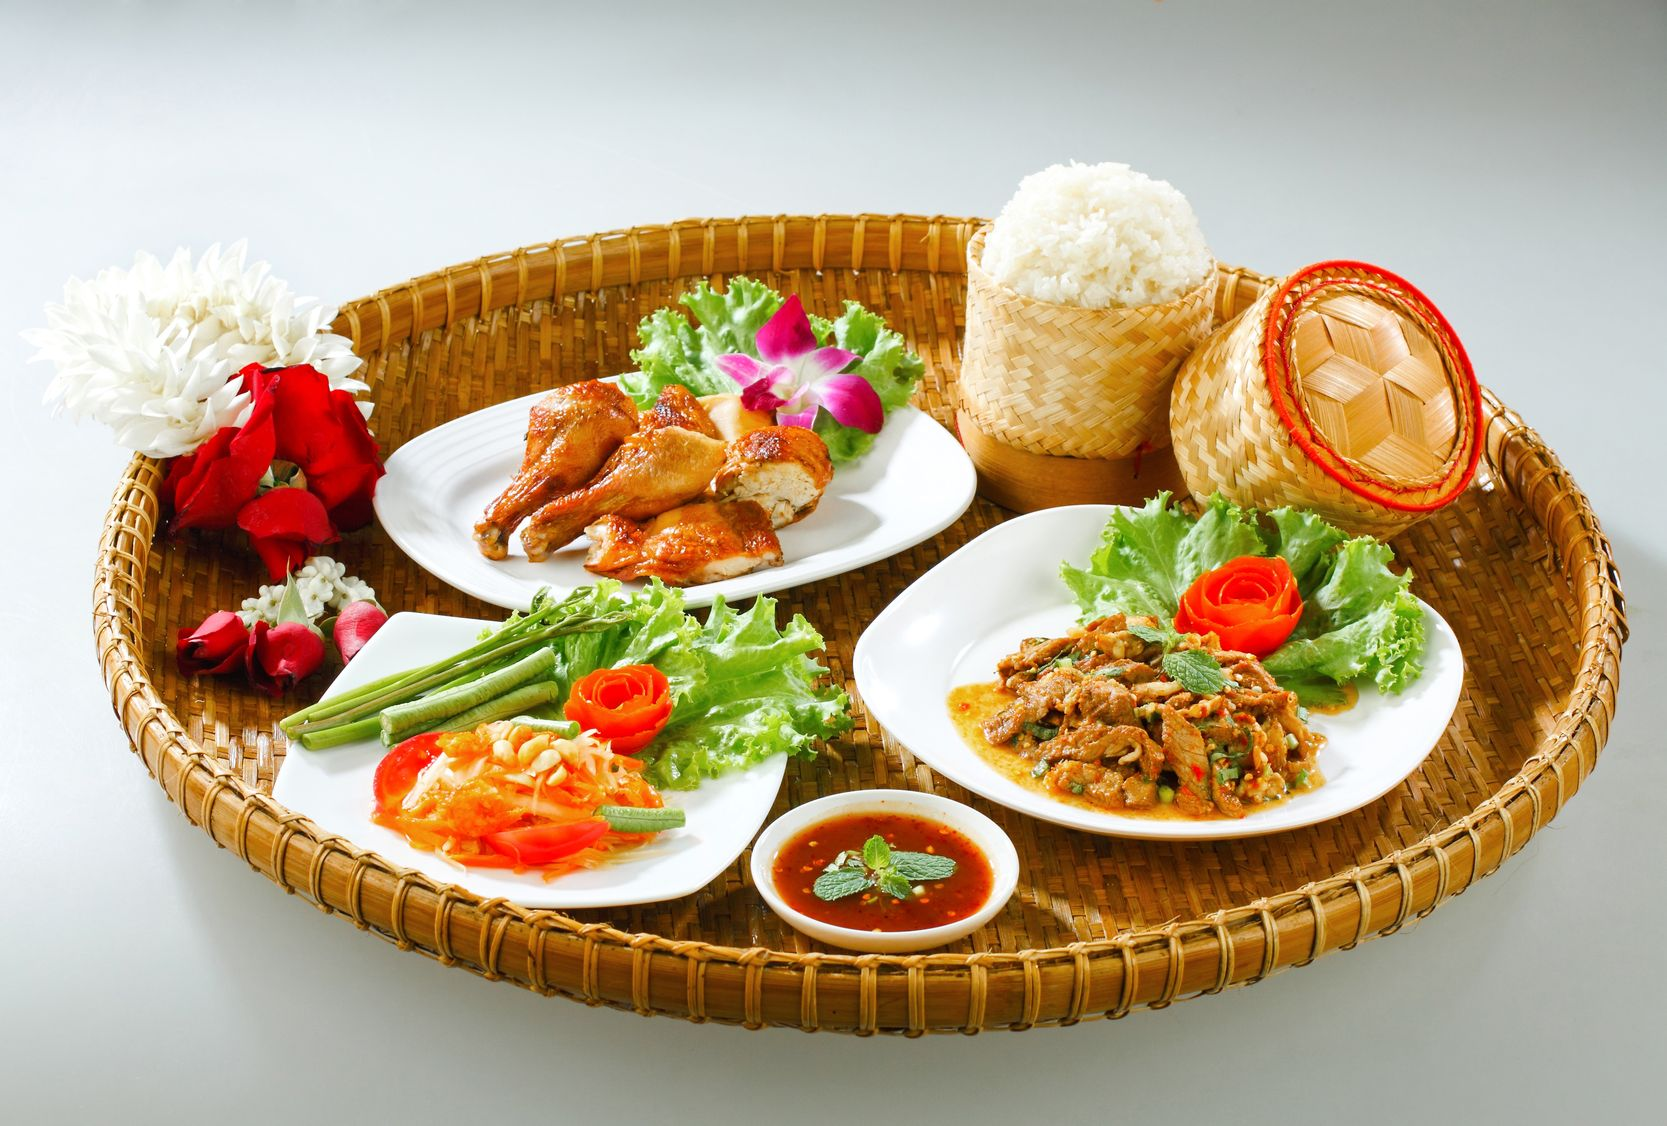 17584756 - full tray serves with northeast region thai food